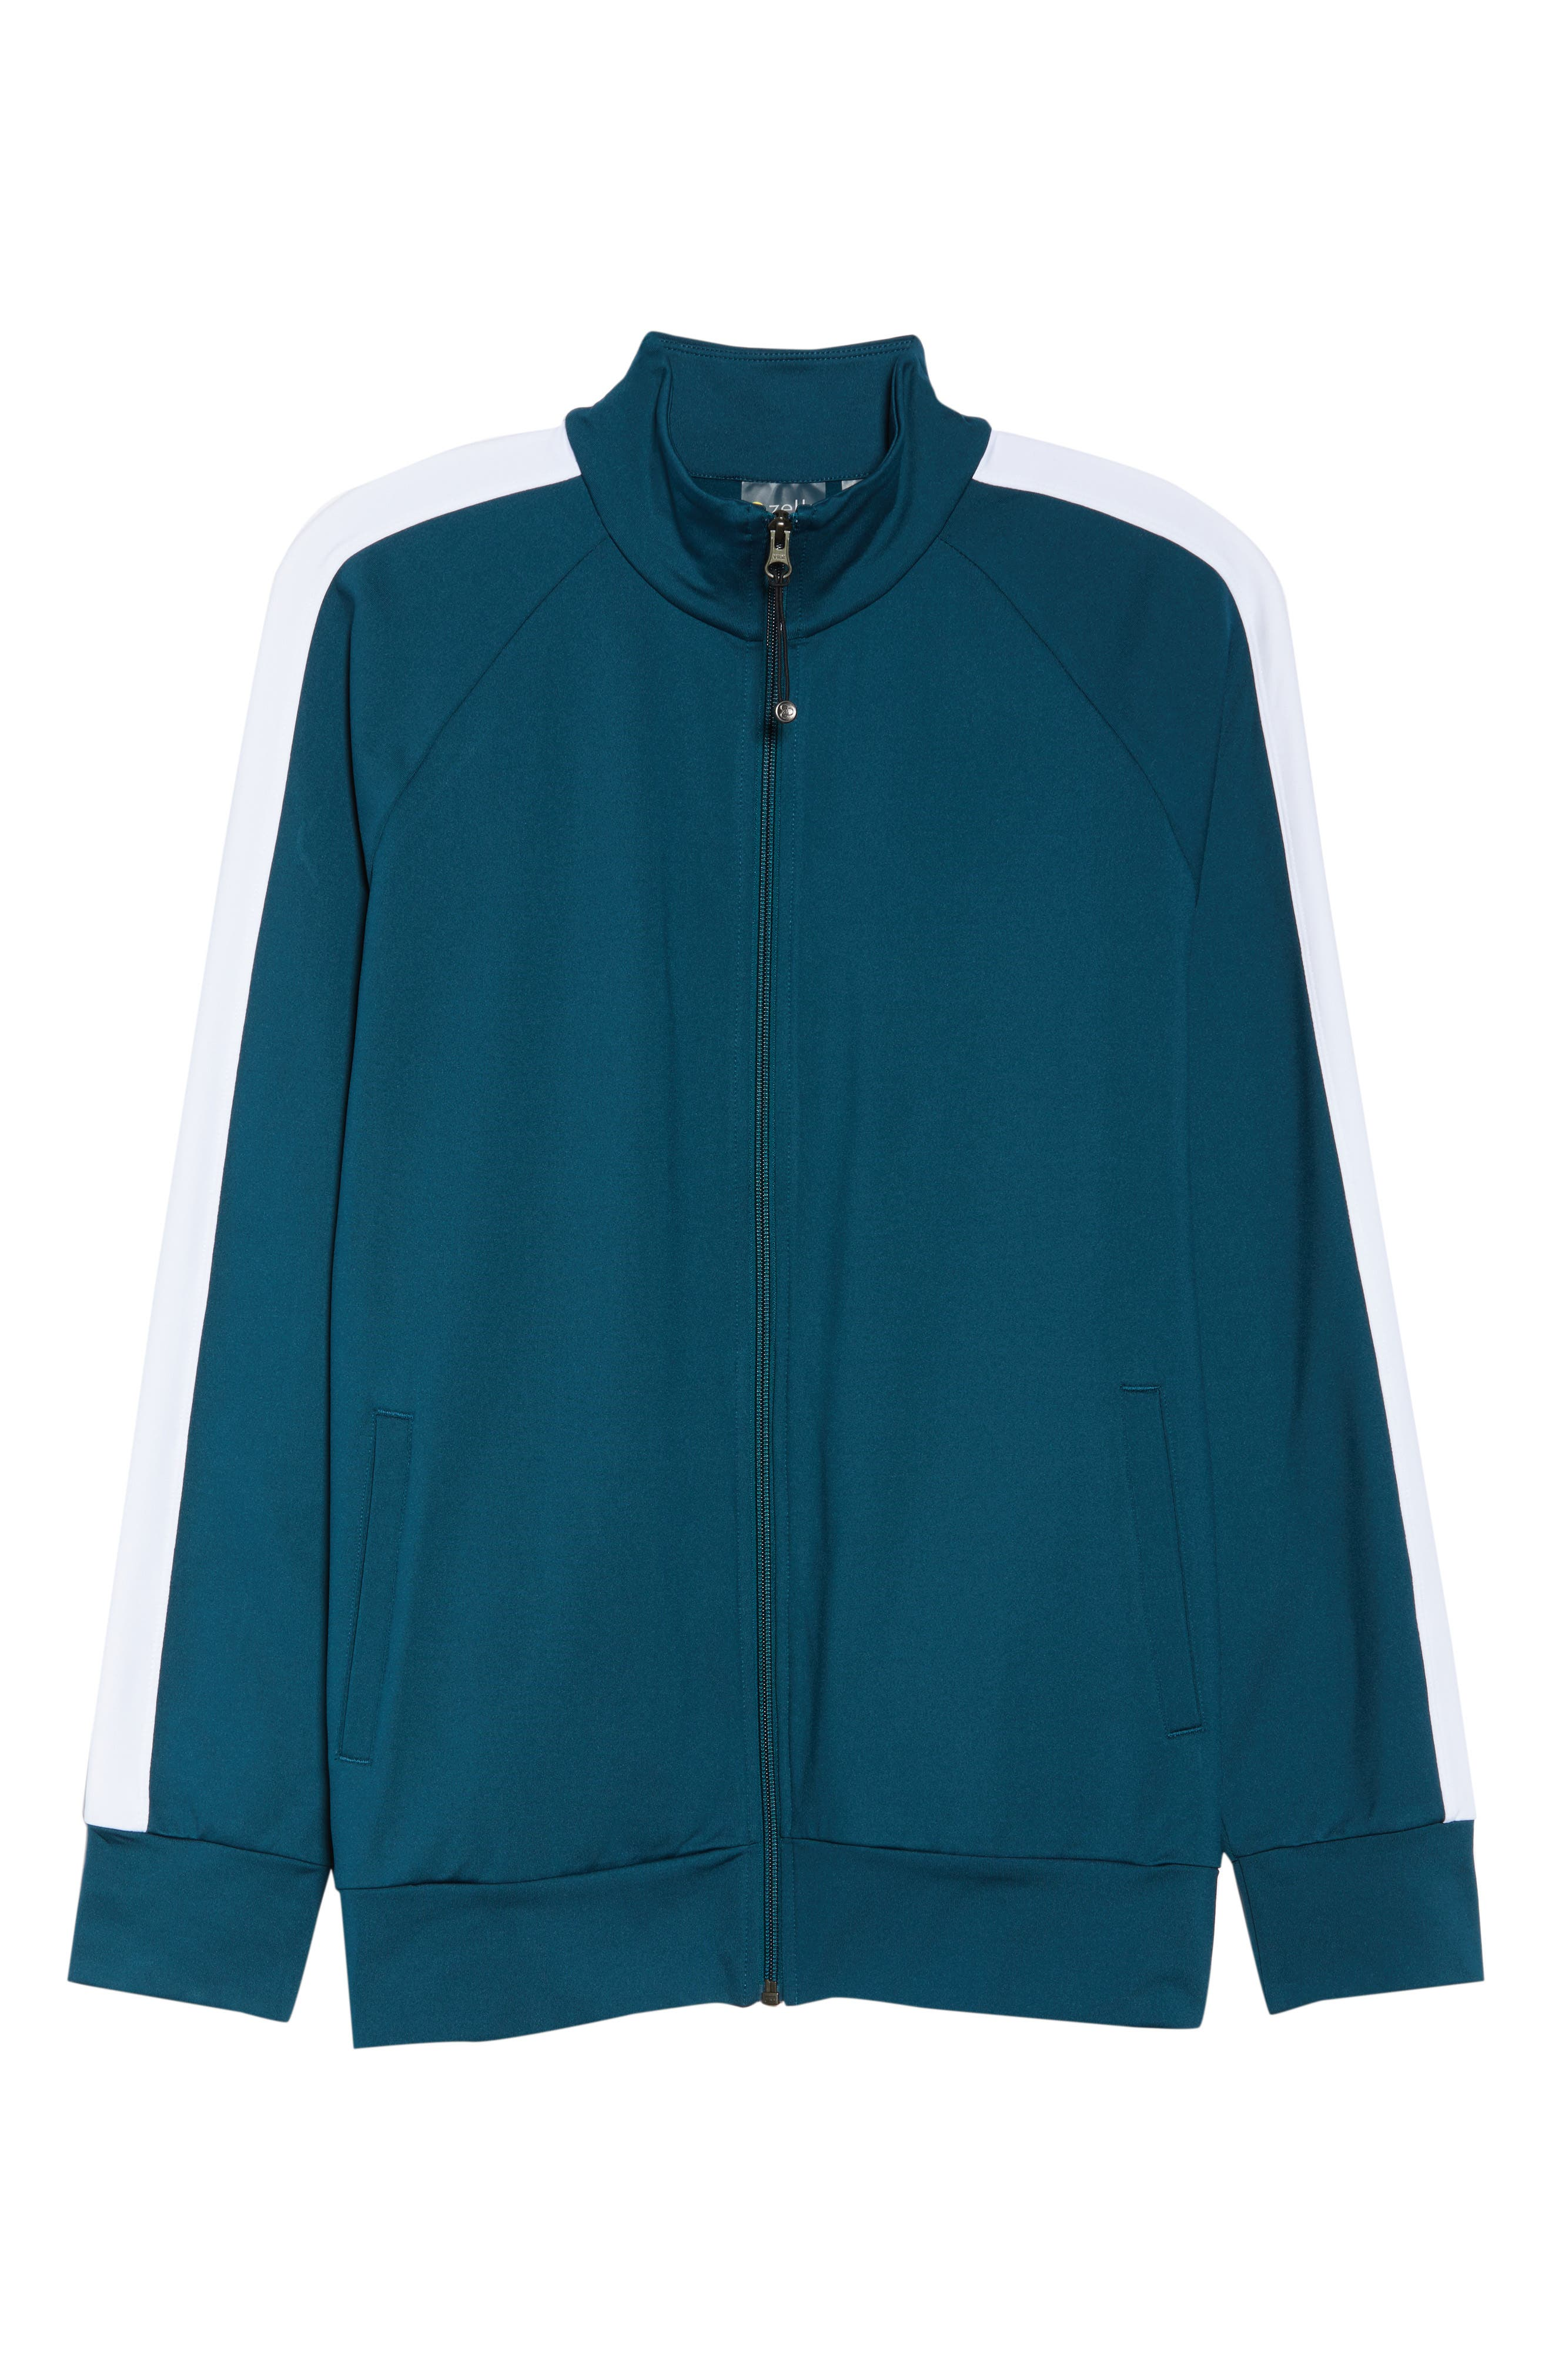 Taylor Track Jacket,                             Alternate thumbnail 6, color,                             TEAL ABYSS